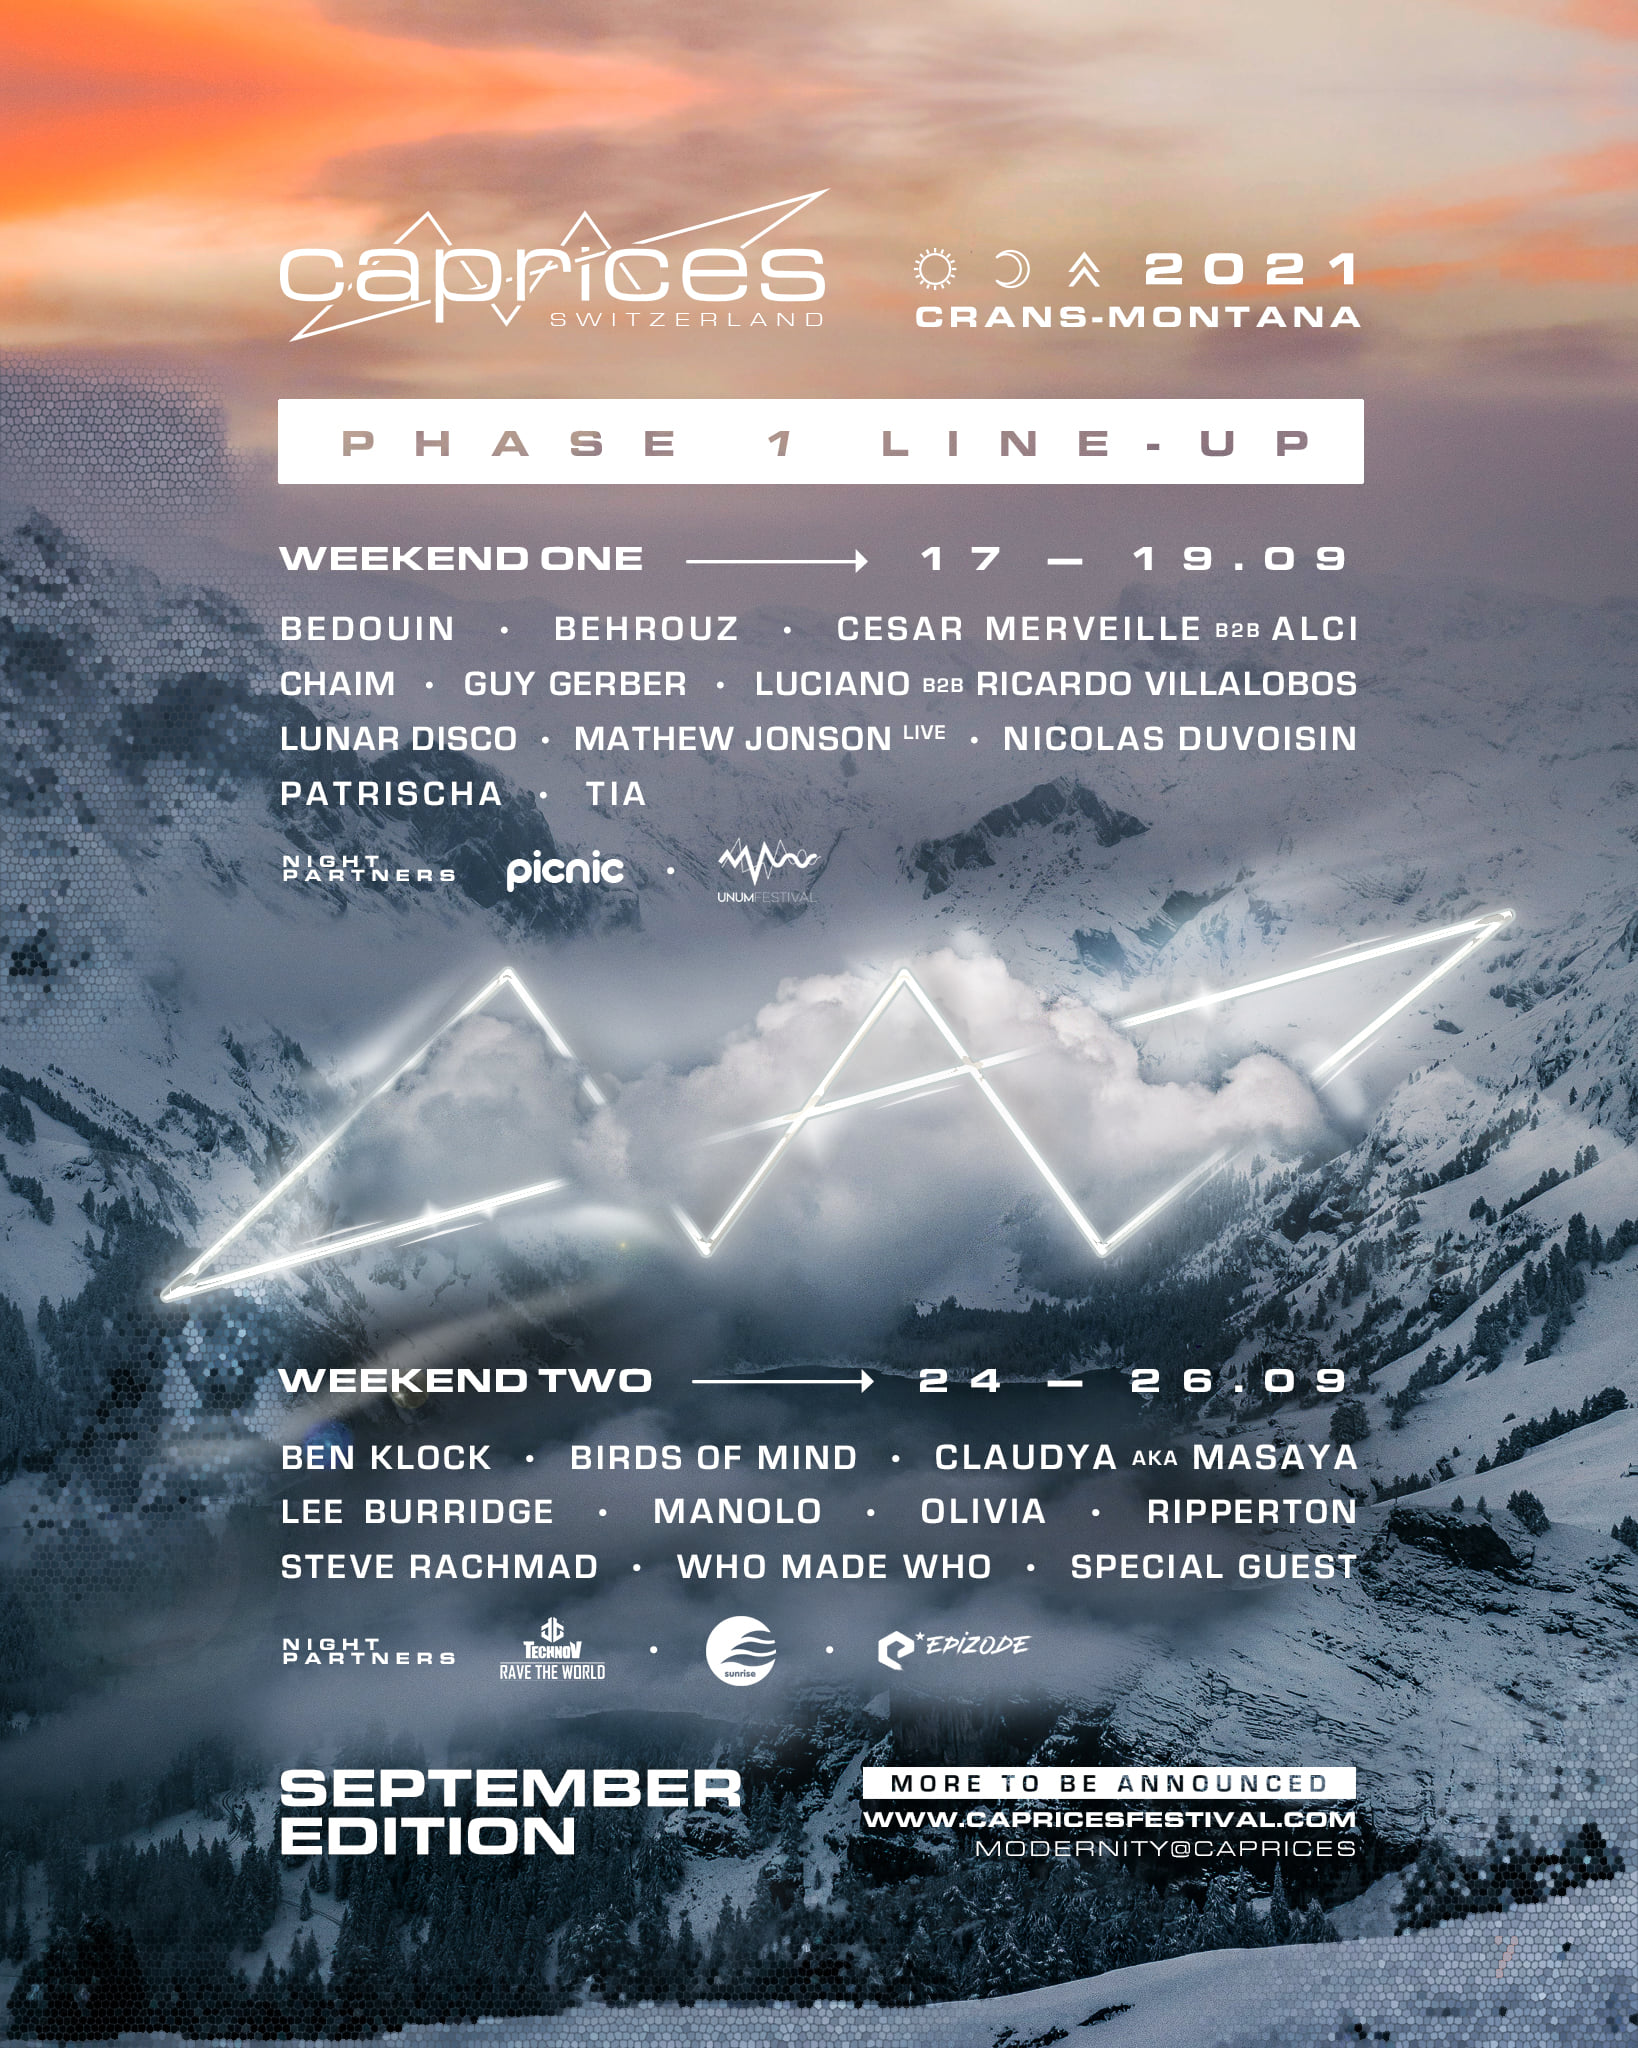 CAPRICES - SEPTEMBER 2021 EDITION